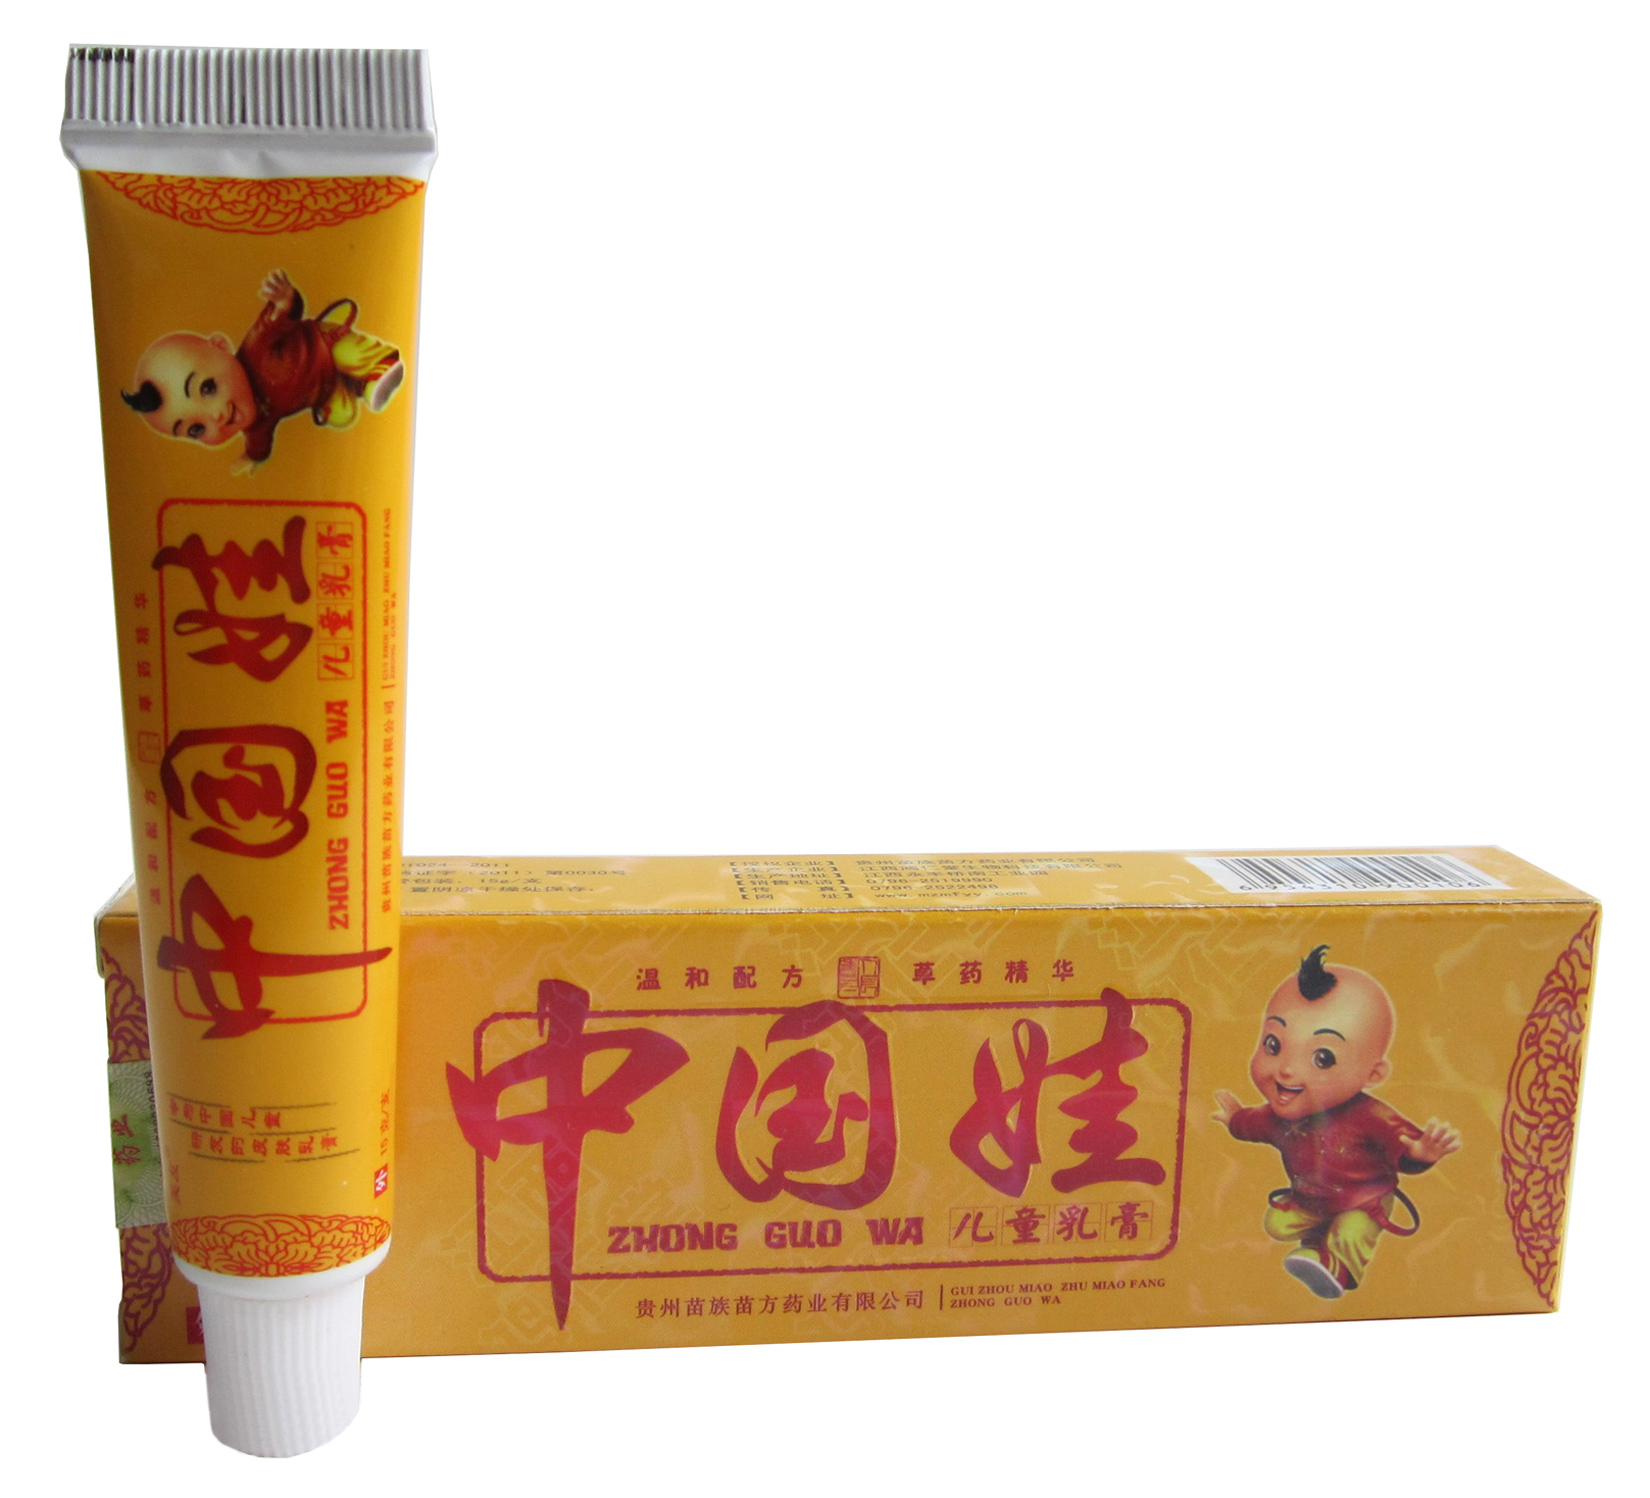 Friends of china fu beshimova children cream [buy 、 send 1 on the same product] guizhou miao fang china beshimova security Cream infants and young